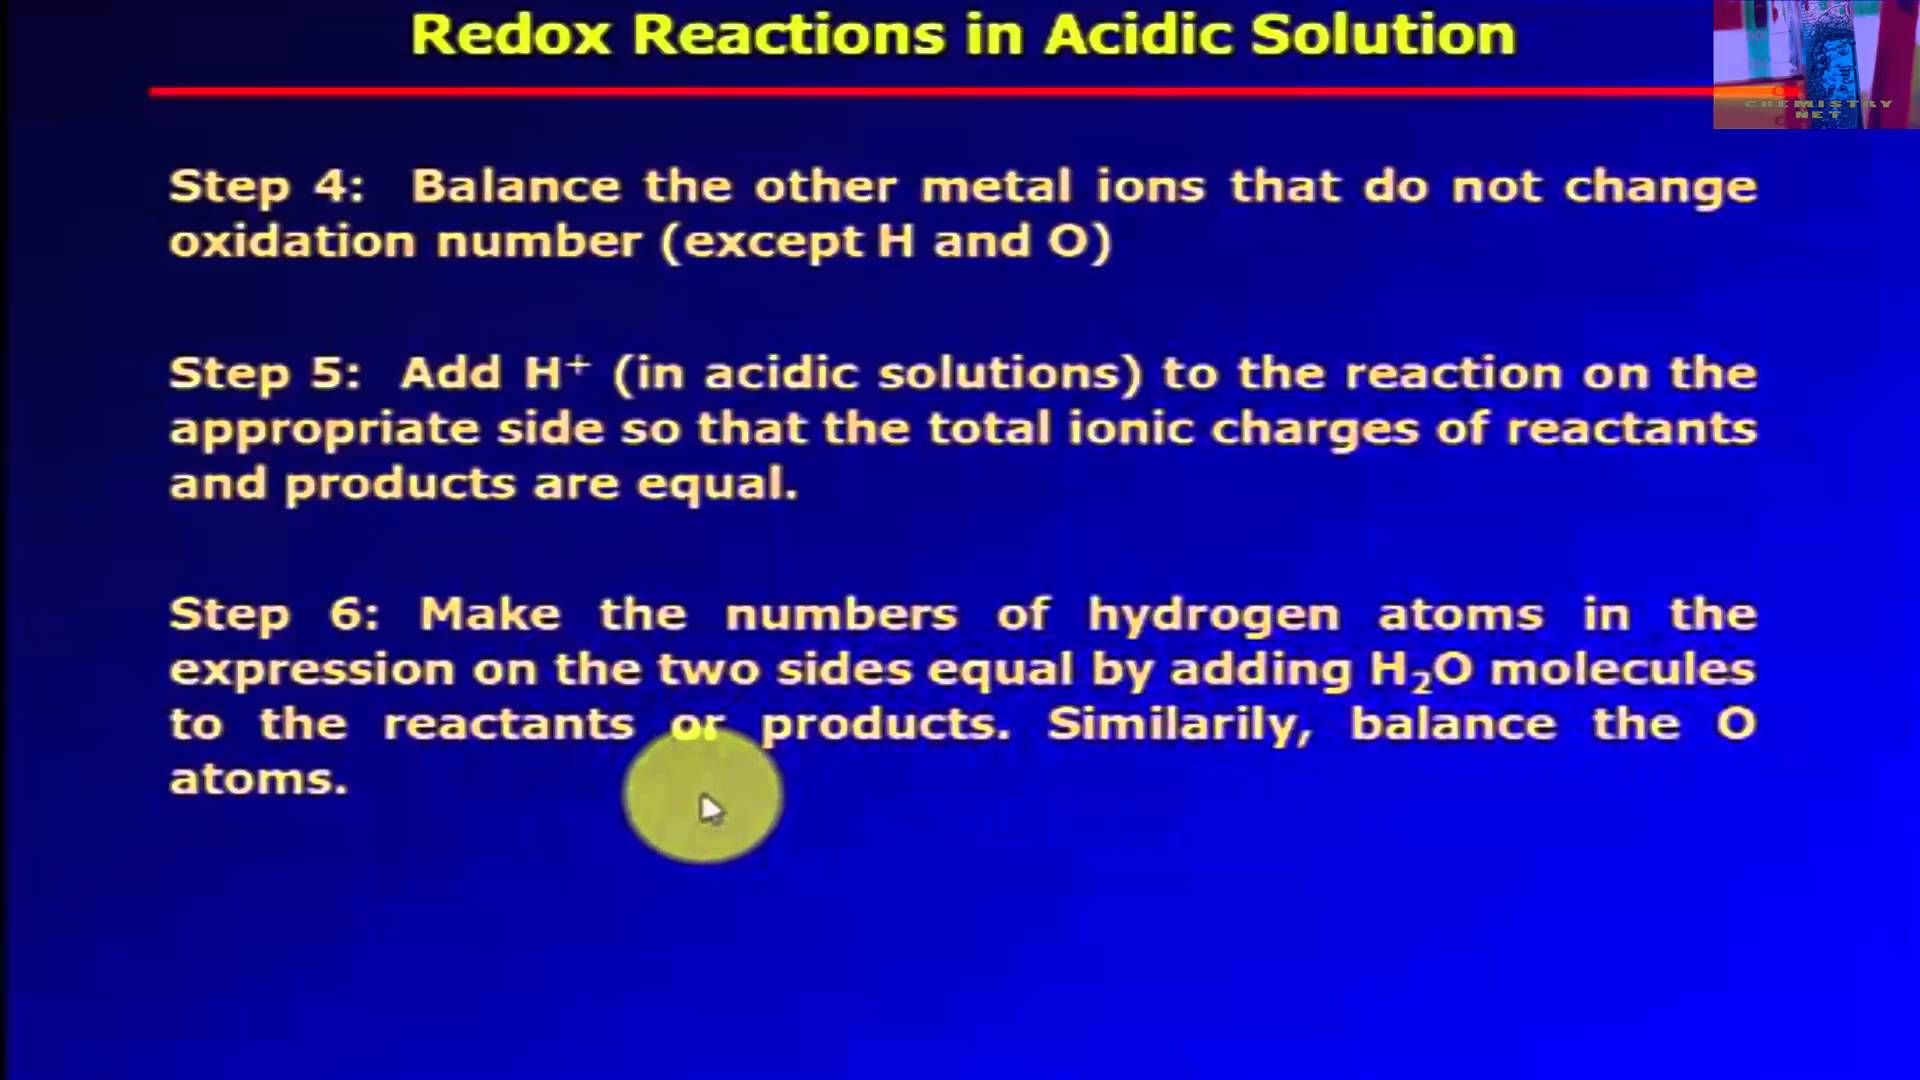 Balancing Oxidation Reduction Reactions Acidic Solution